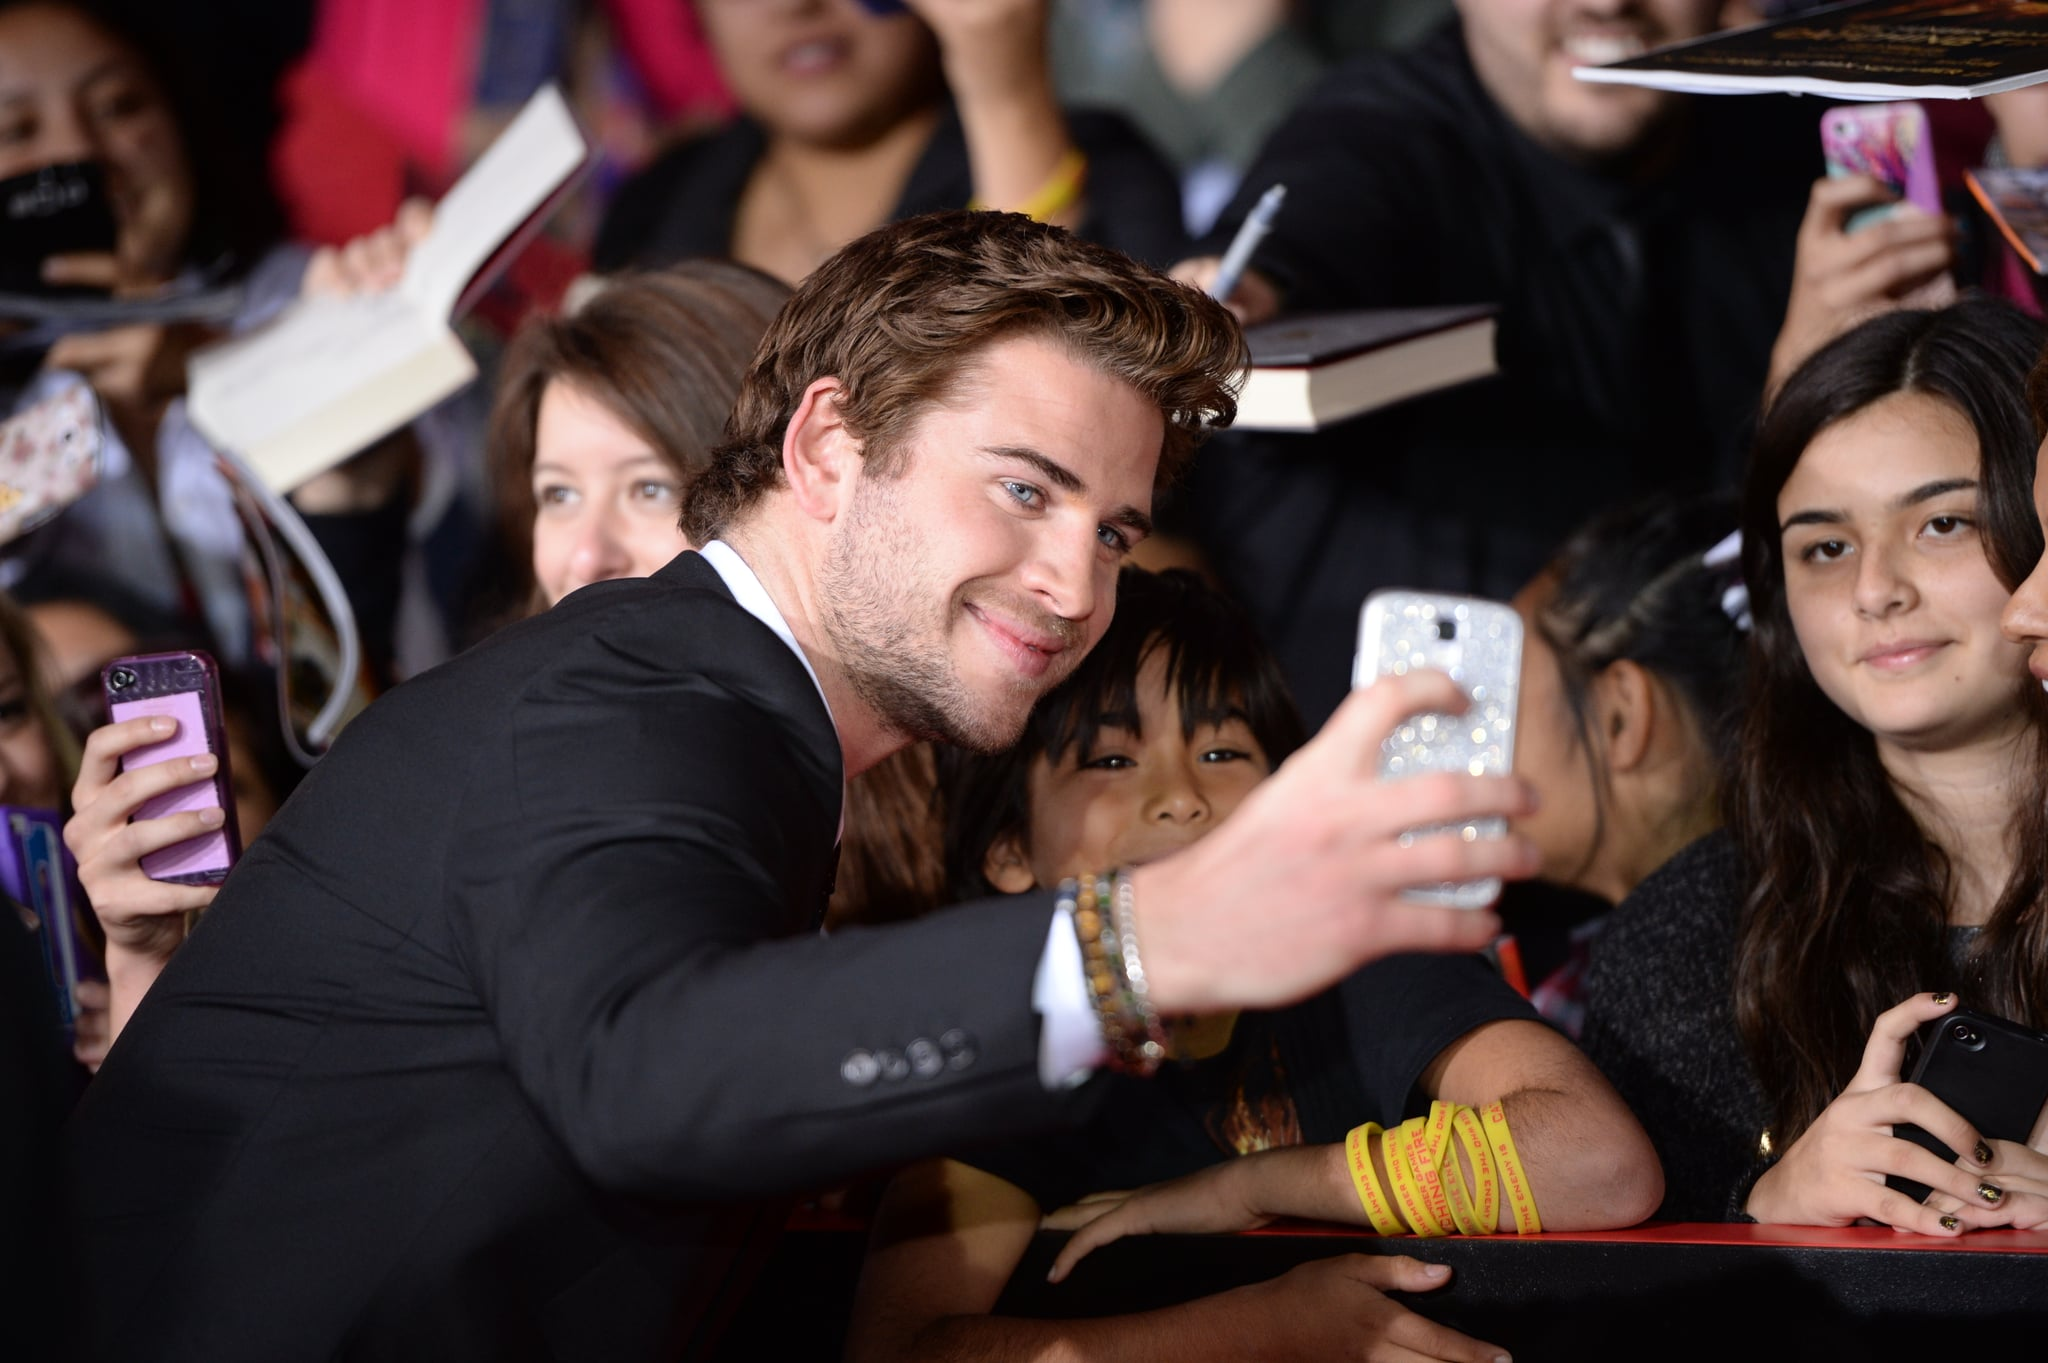 4. He Makes Time For His Fans